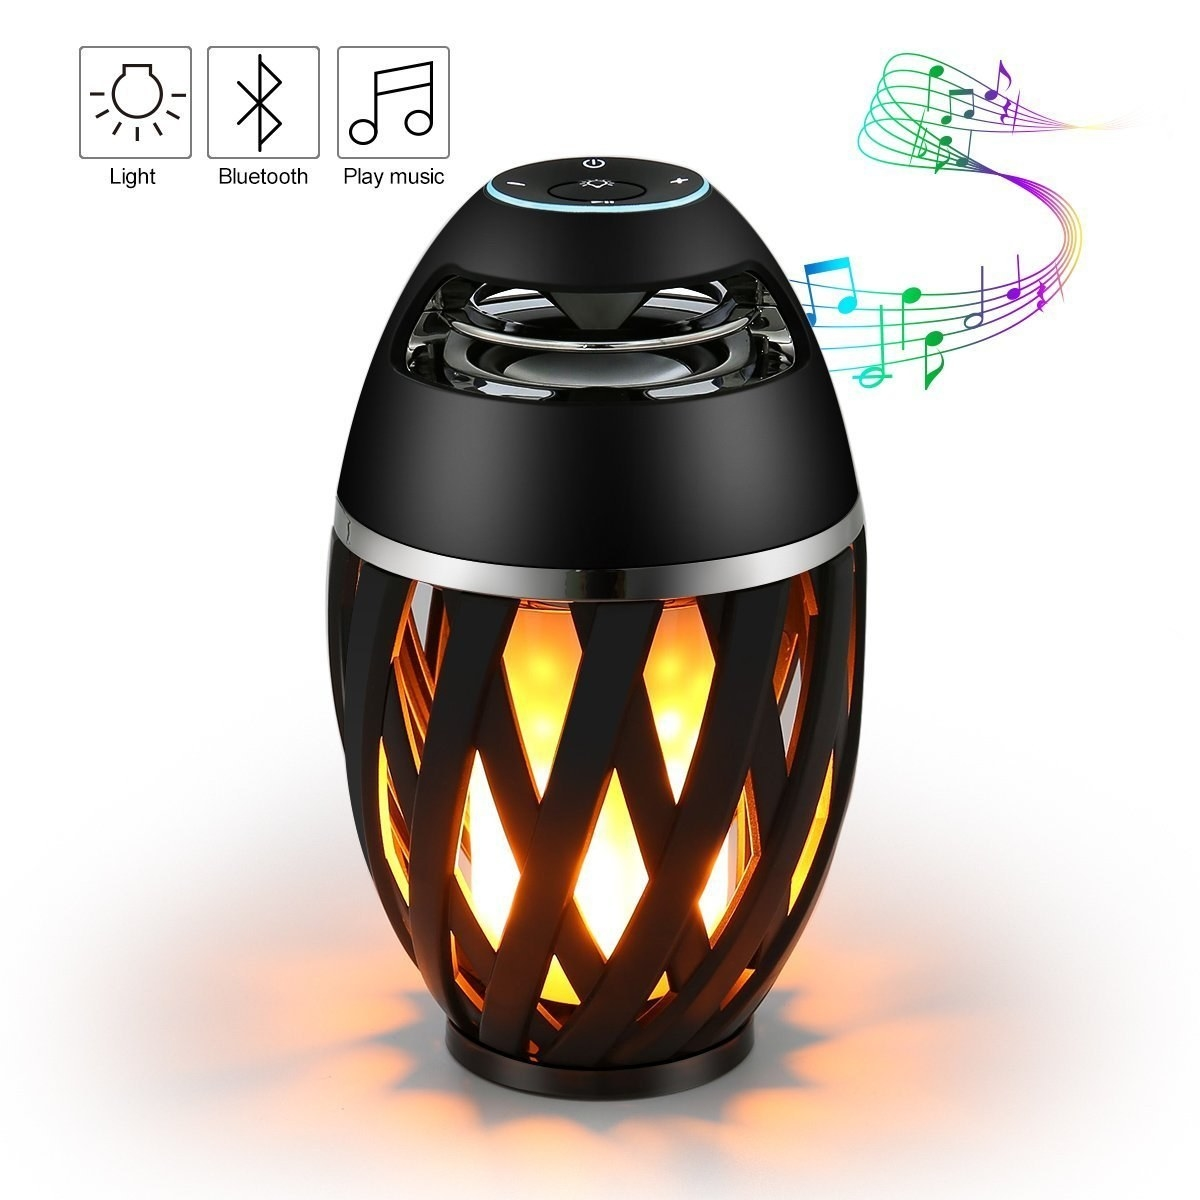 A black bluetooth speaker with its lamp setting turned on. It's shown playing musical notes